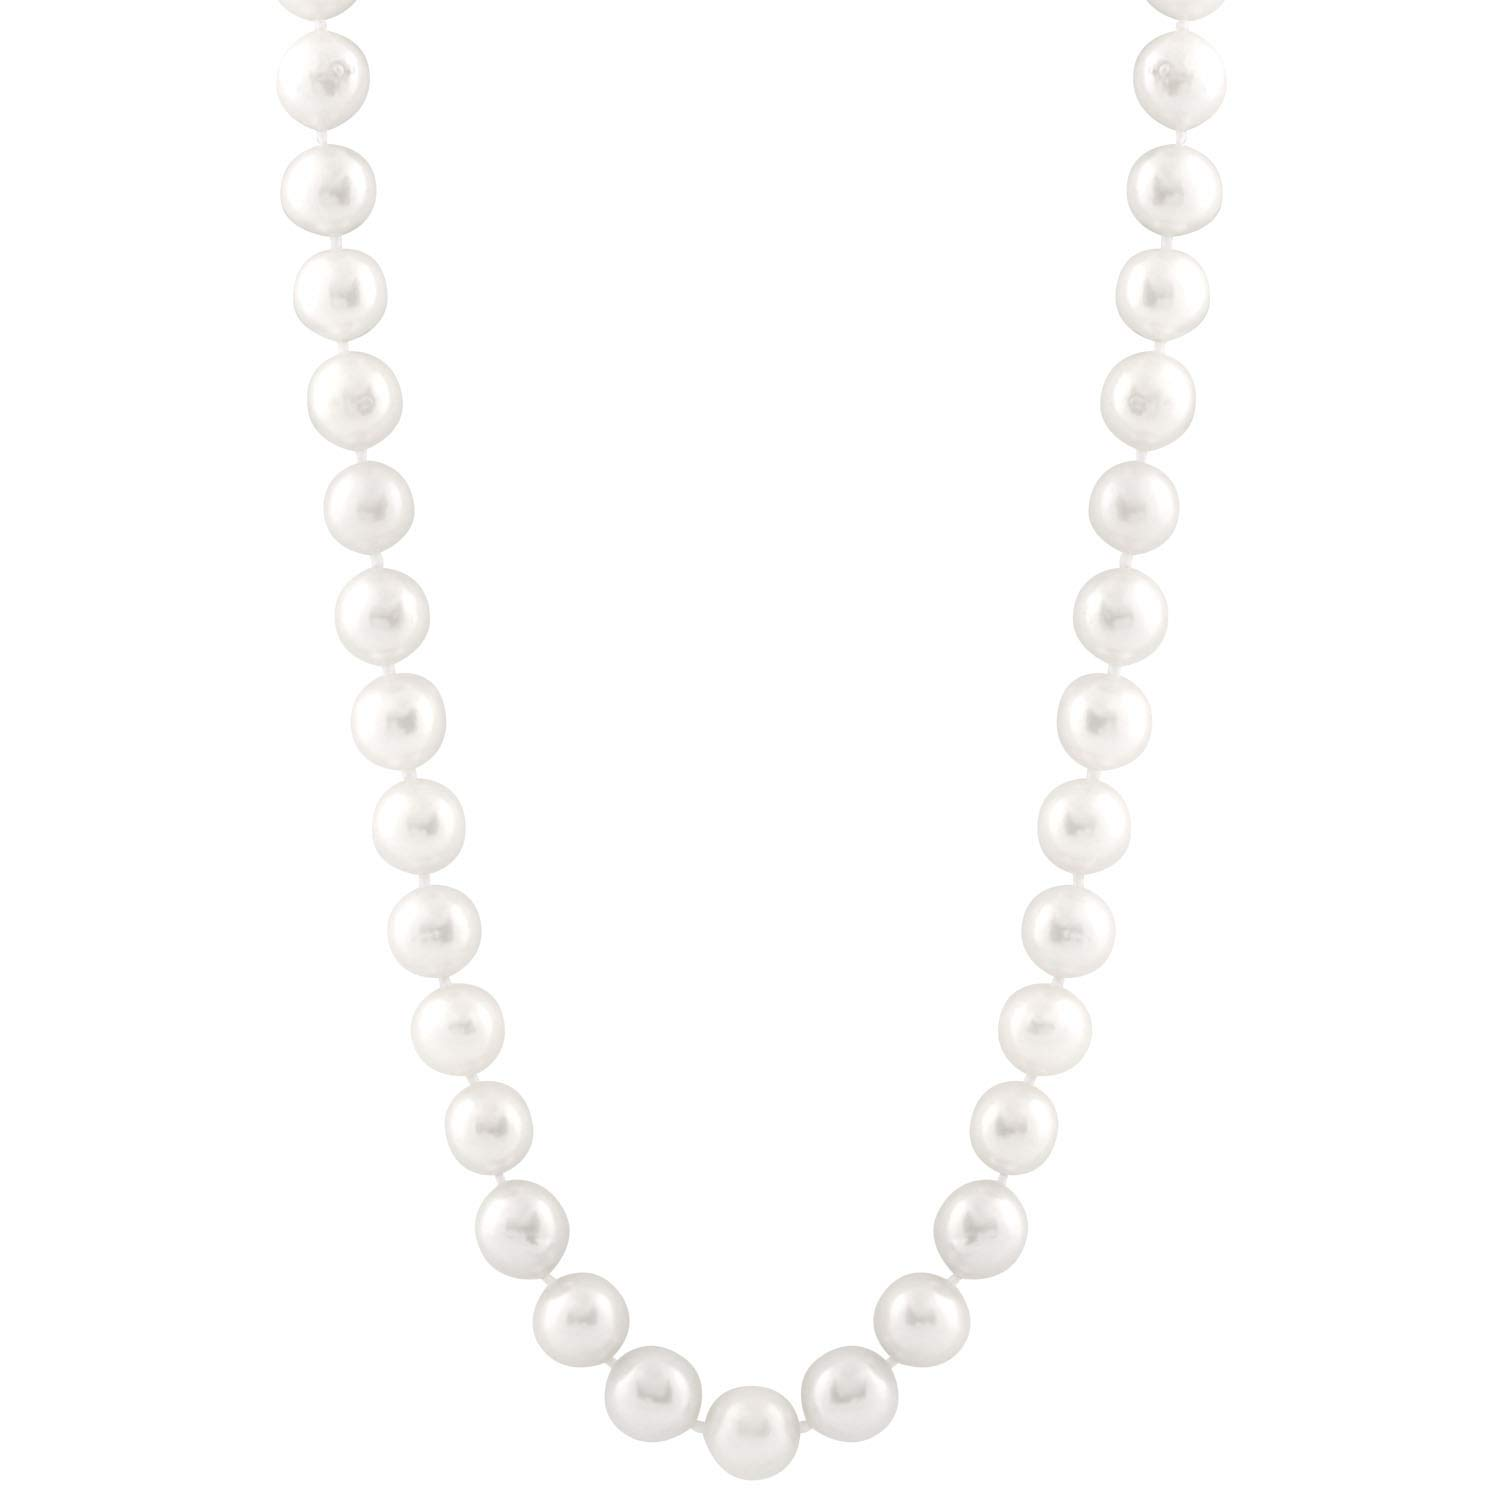 Handpicked AA Quality Nucleus 11-13mm White Freshwater Cultured Pearl Strand 18 Necklace 14K White Gold Clasp